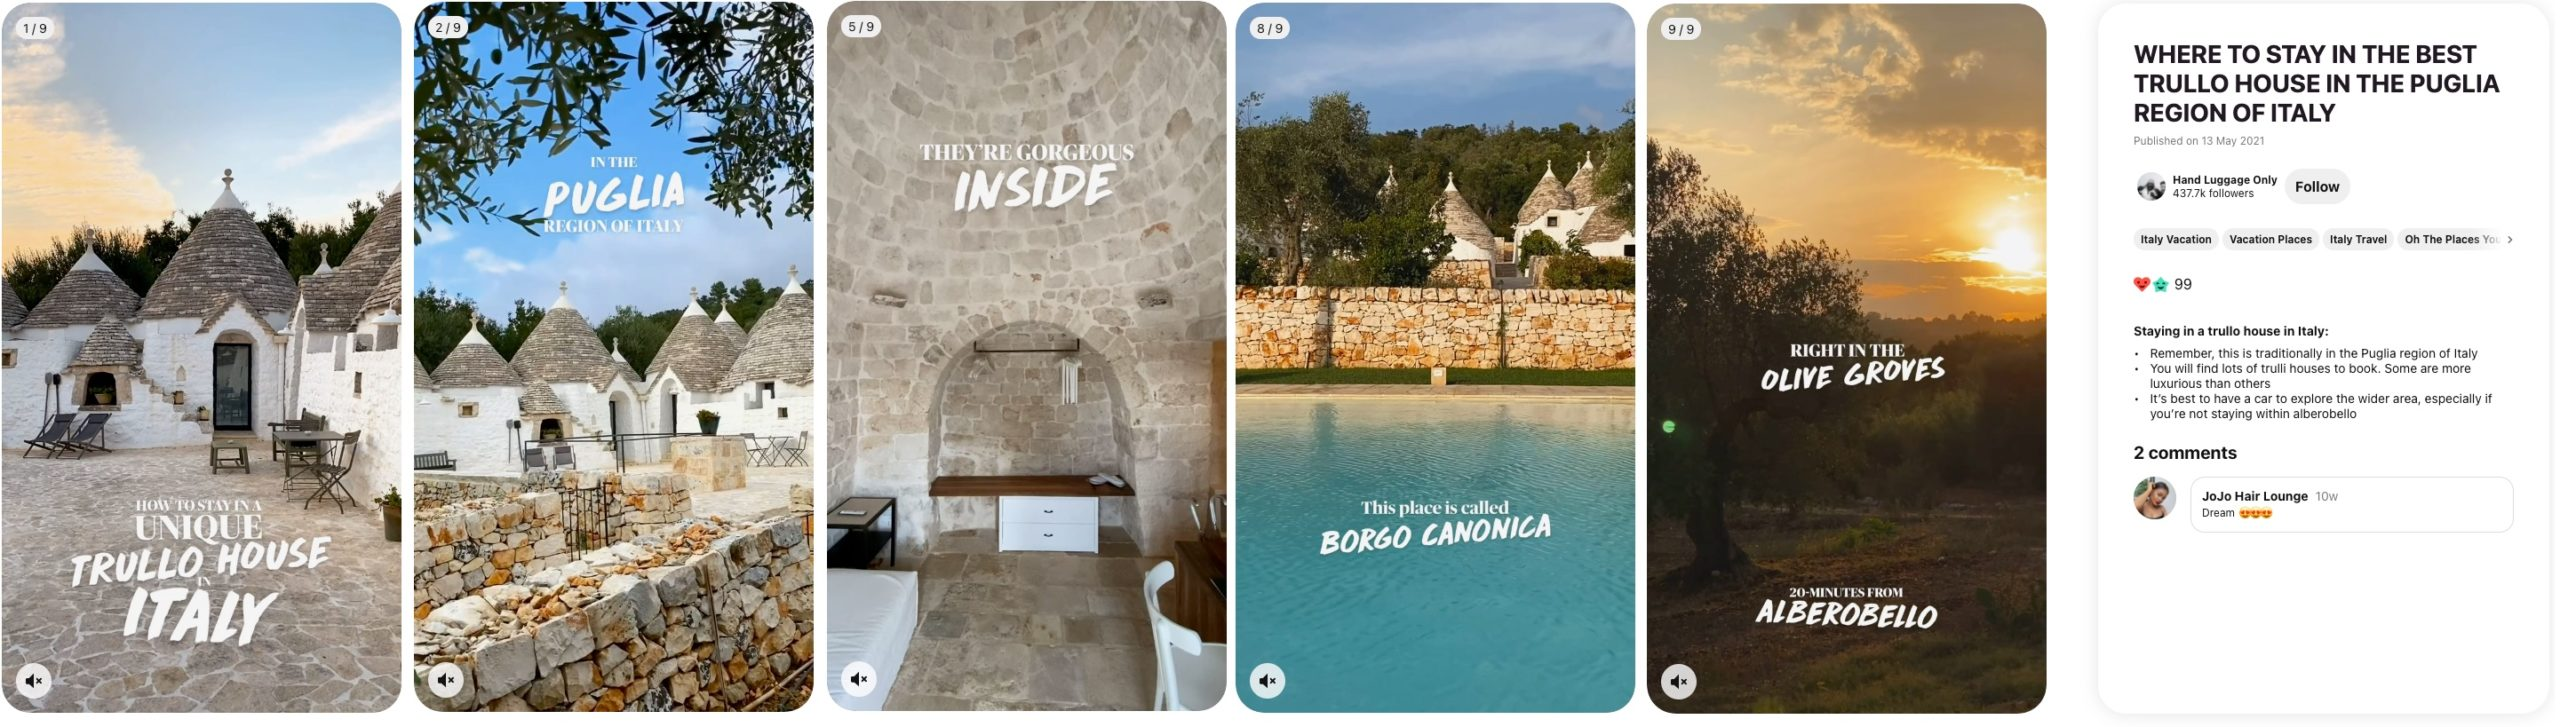 Image showing Pinterest ad specs example of ideas pin for travel destination in Italy